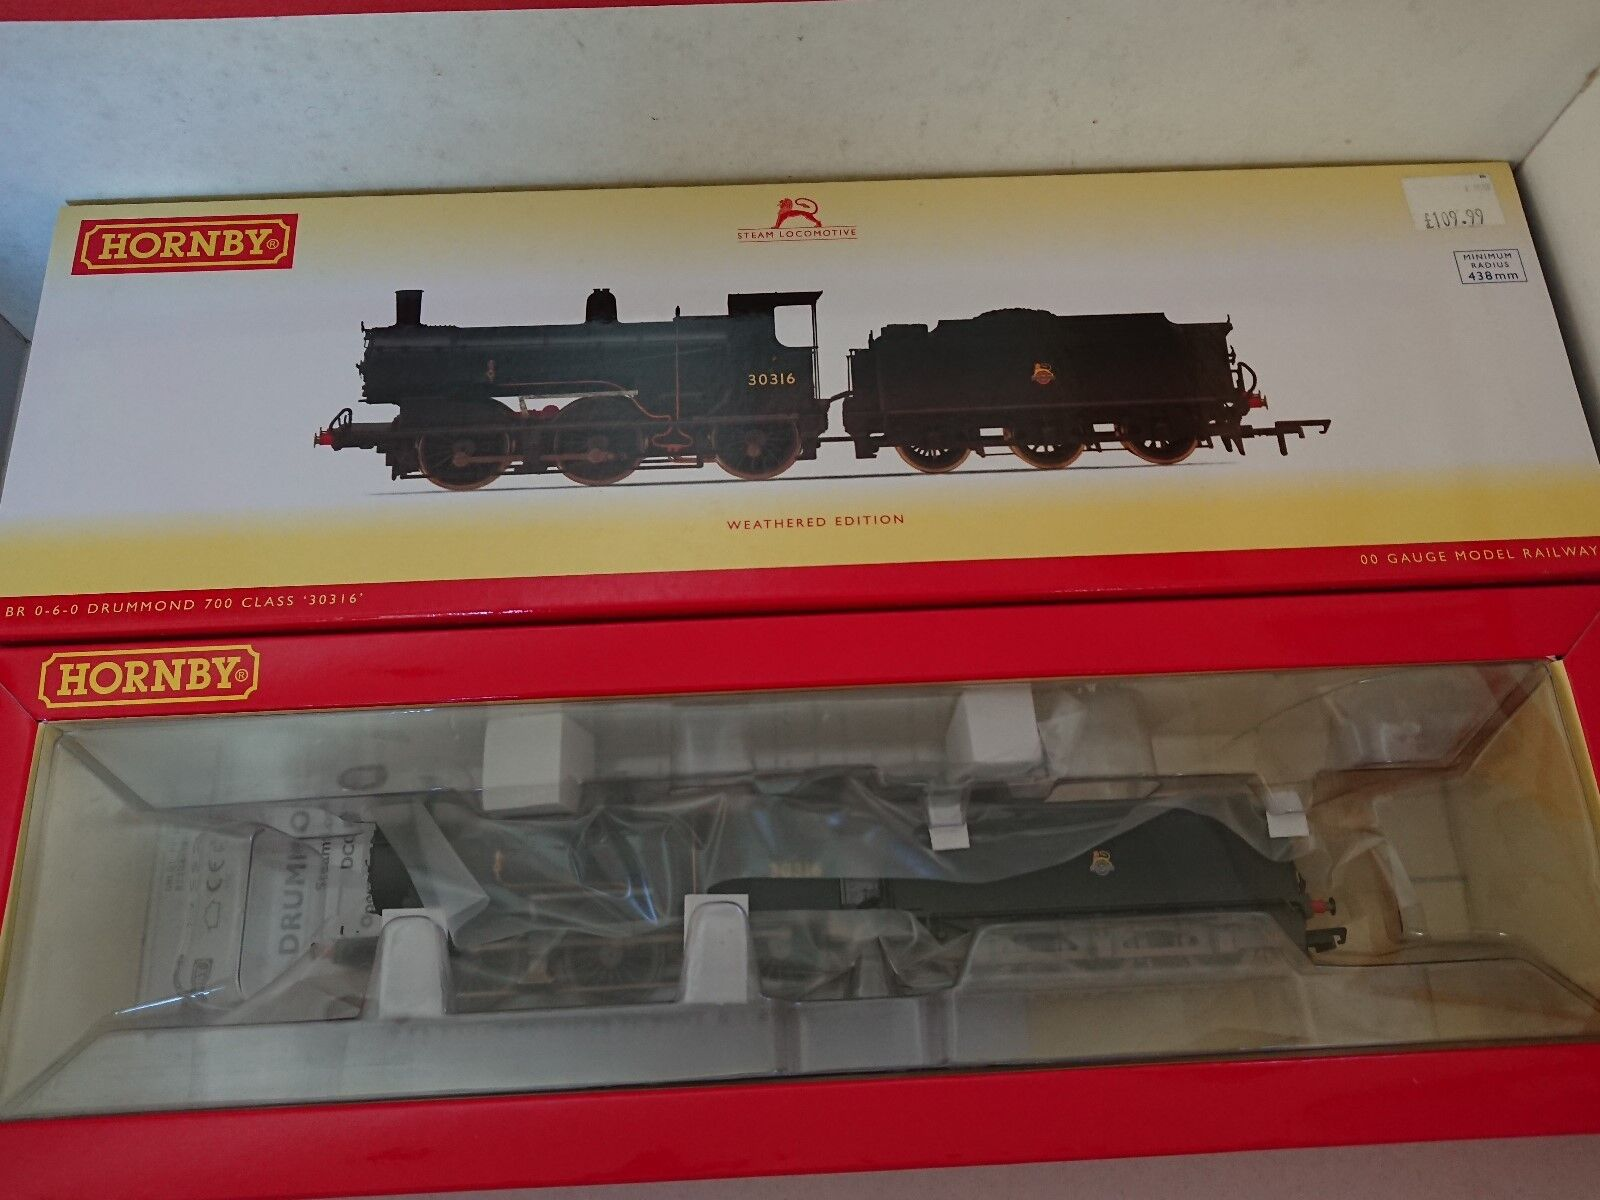 Hornby R3304 BR 0-6-0 Drummond 700 Class No. 30316 Weatherojo DCC Ready NEW